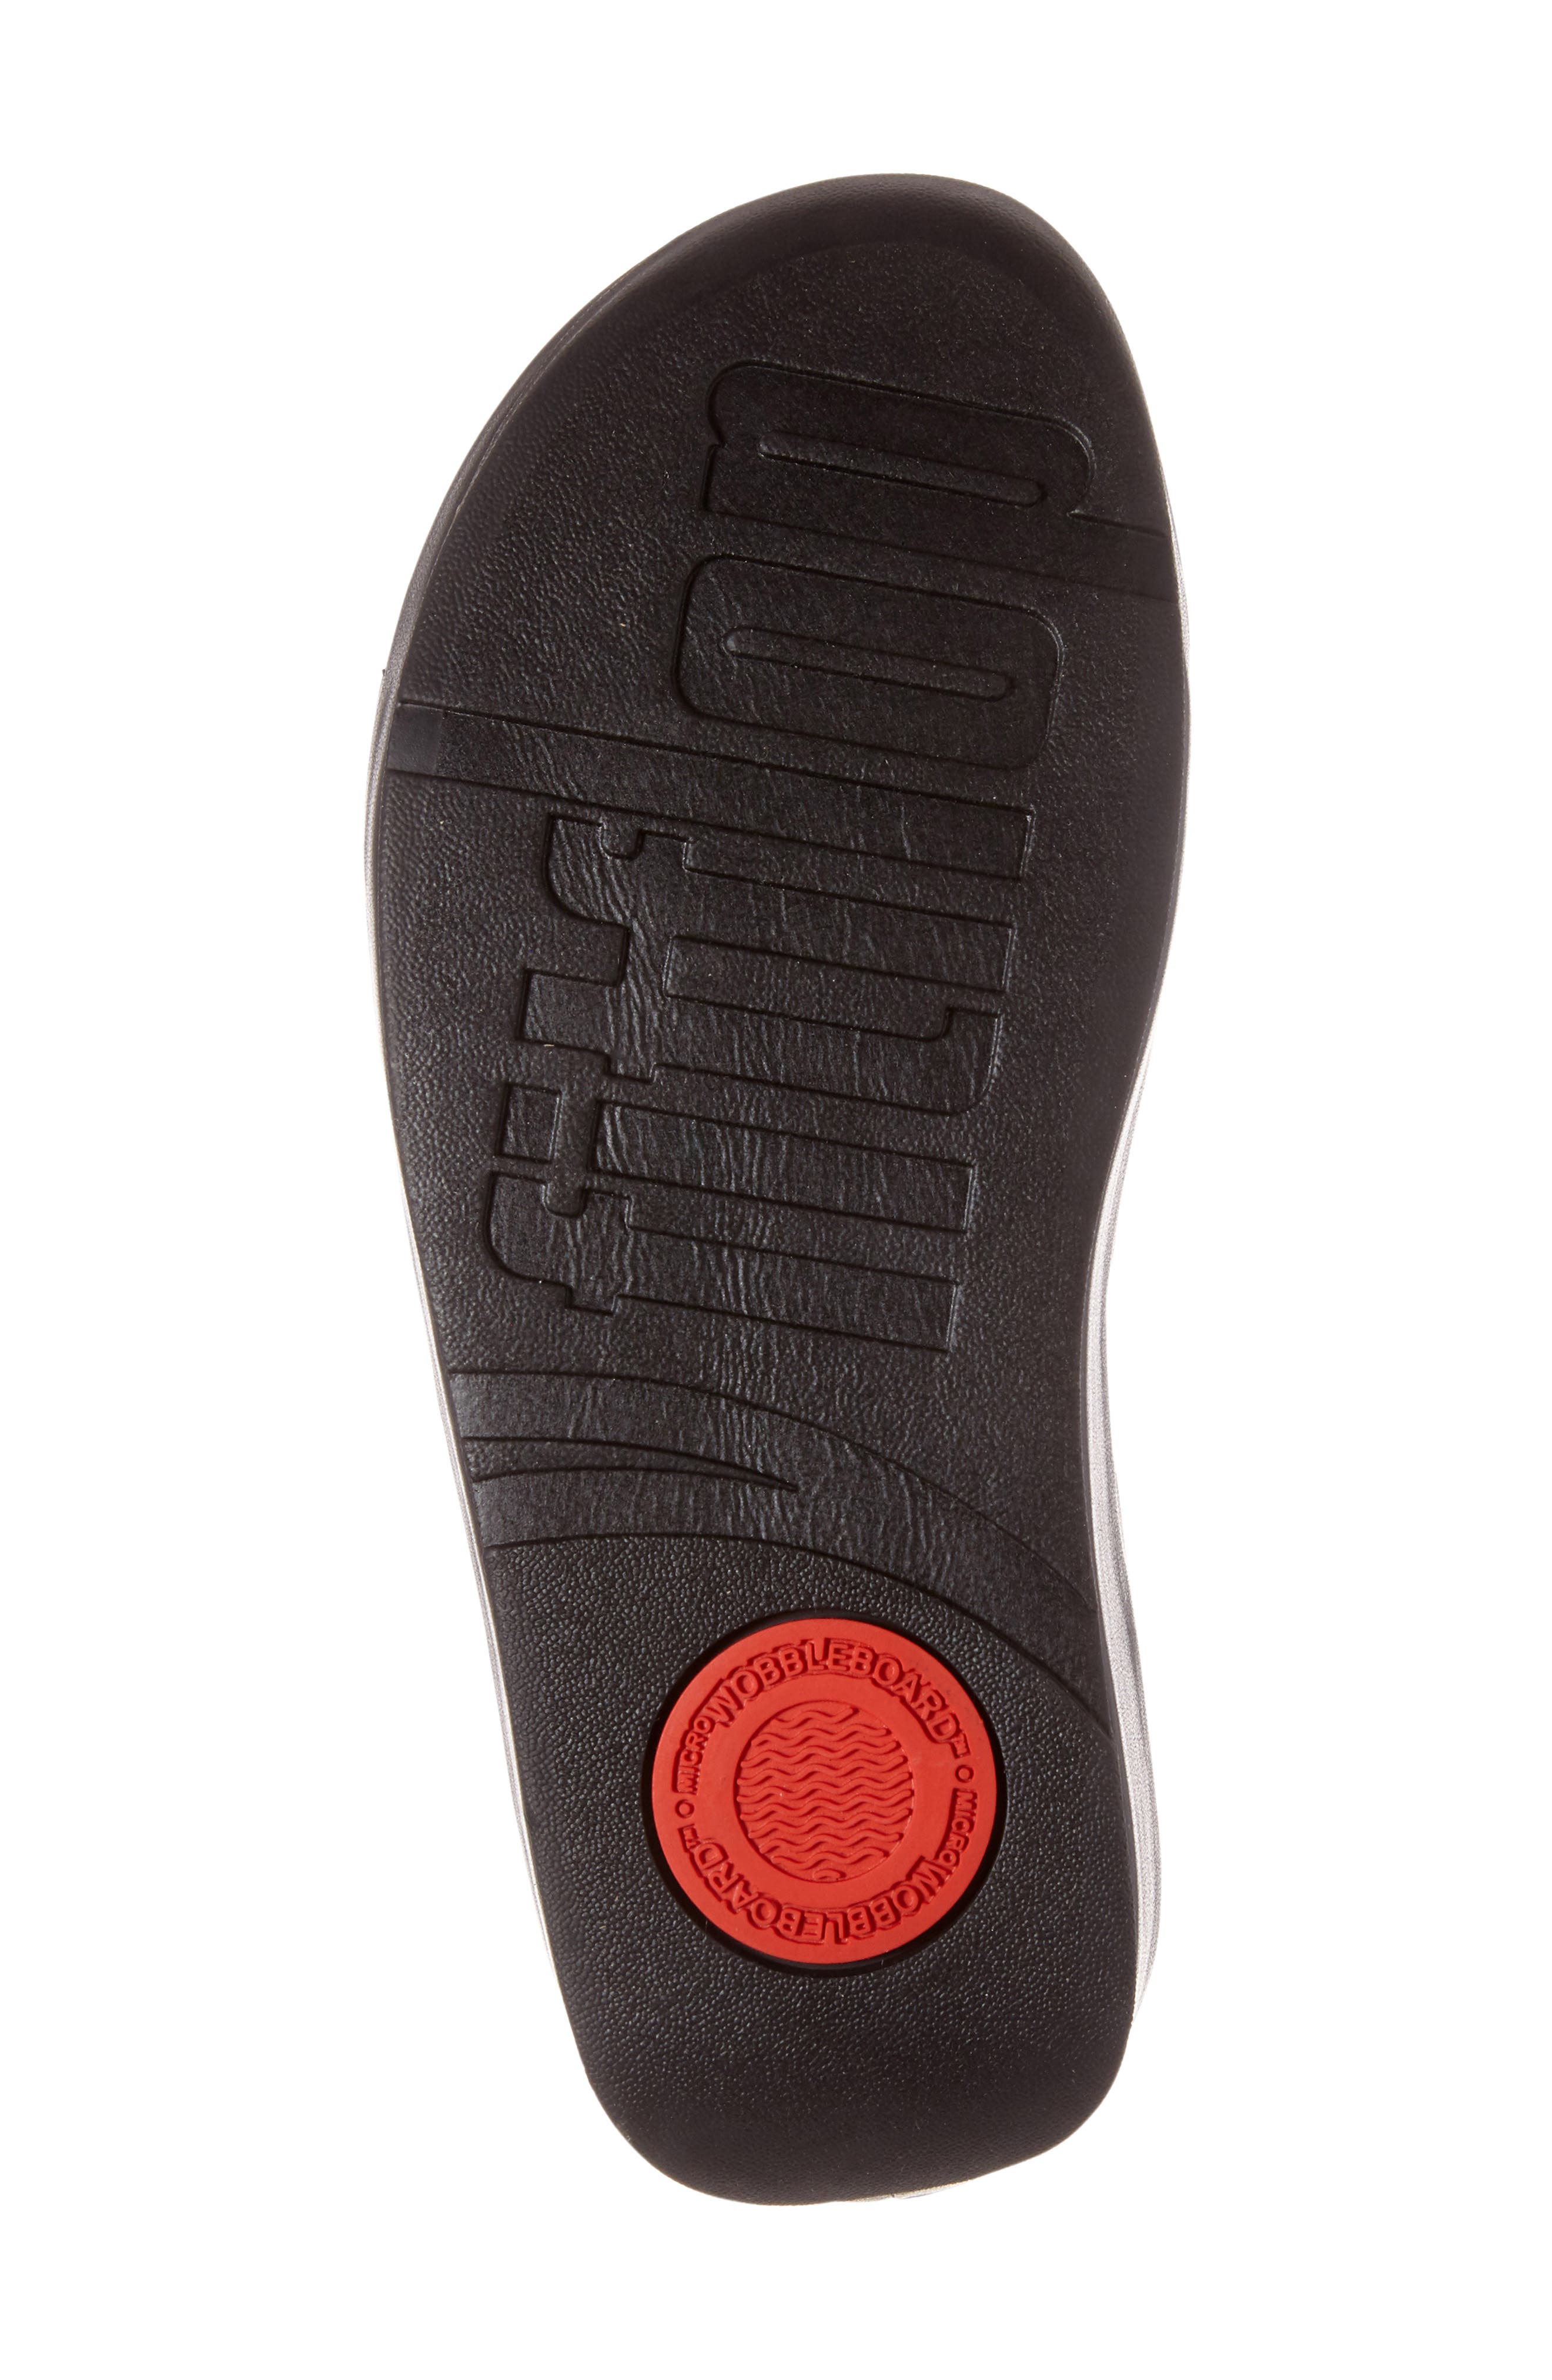 FITFLOP,                              Crystall Wedge Sandal,                             Alternate thumbnail 6, color,                             001